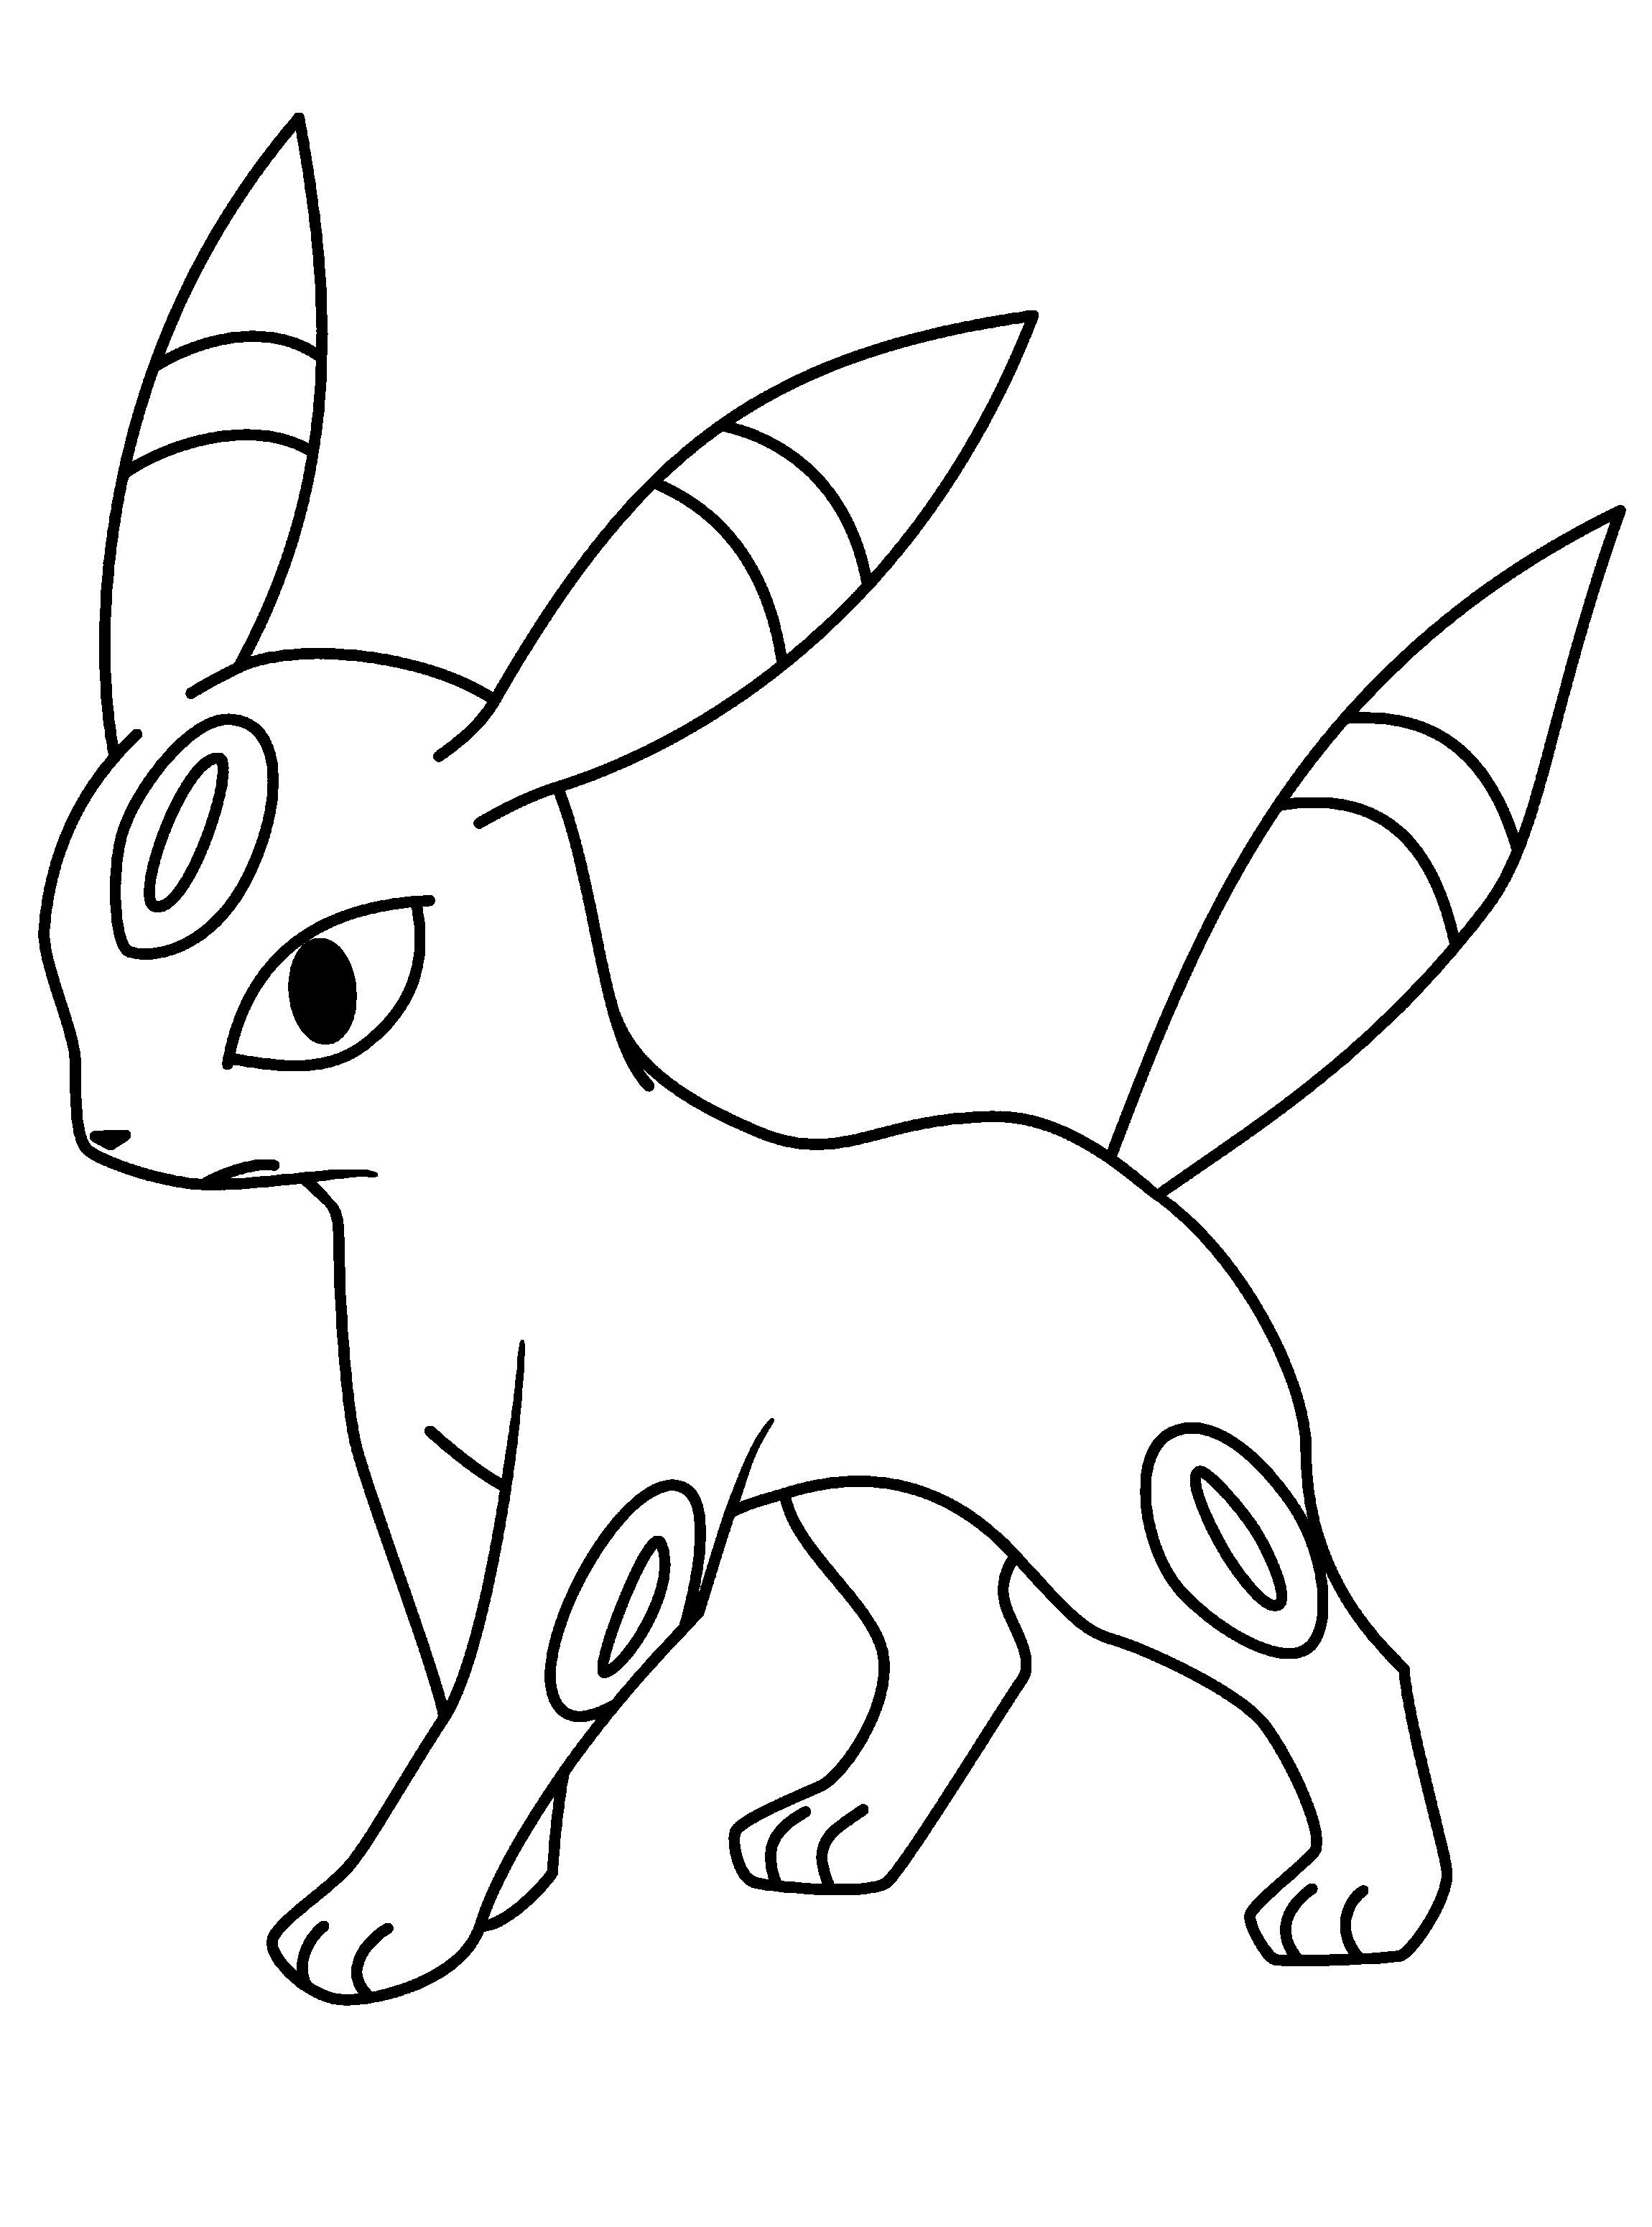 Printable Pokemon Coloring Pages Coloring Me Printable Pages